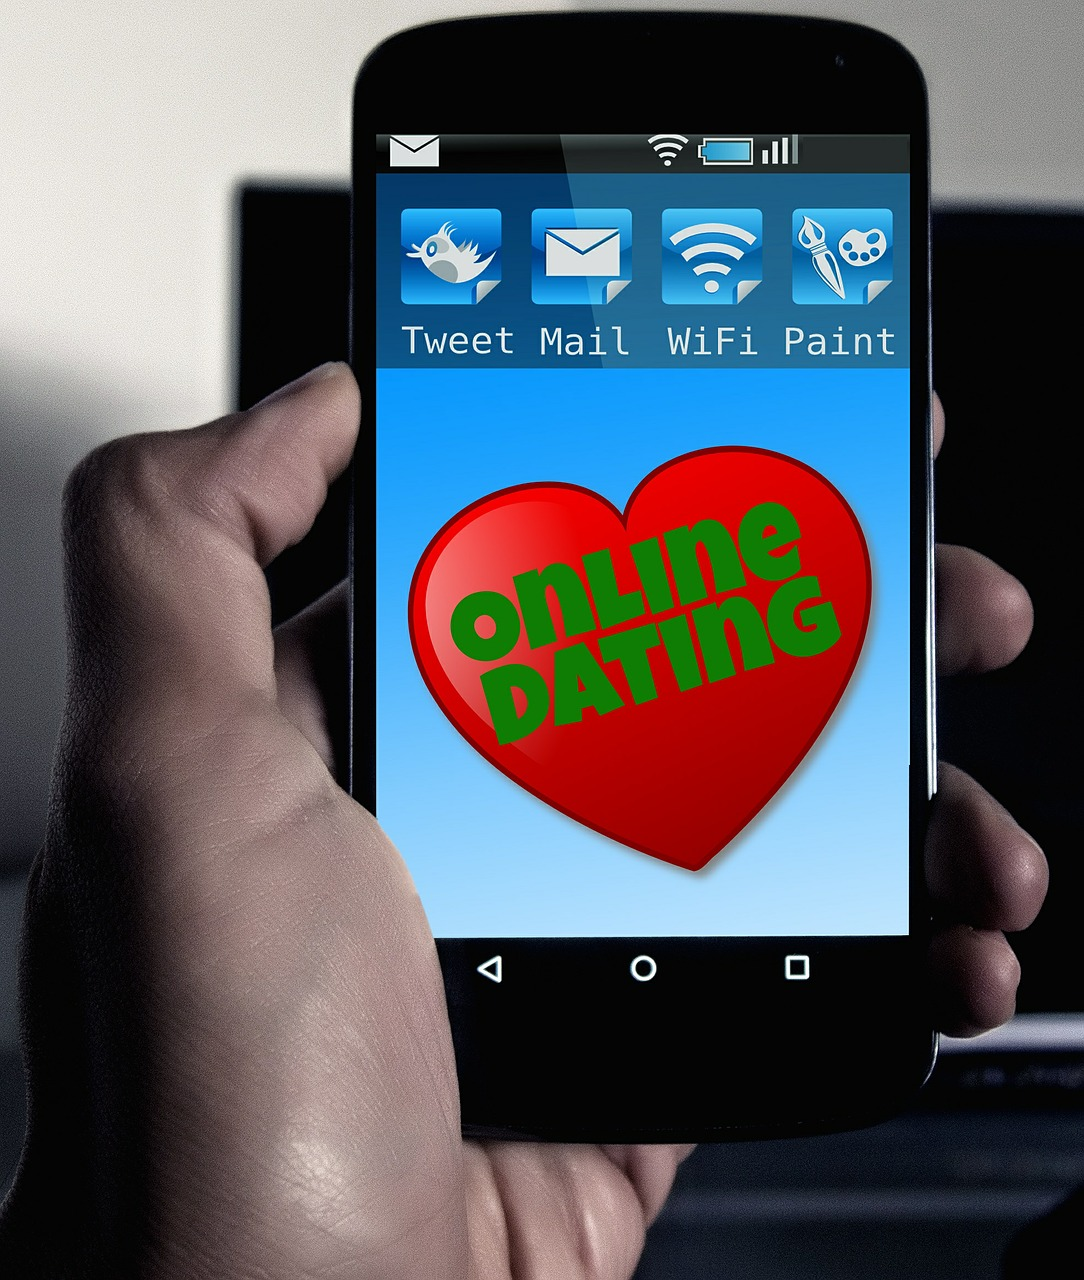 Online Dating: Nigeria among 'easiest countries for men to find women'